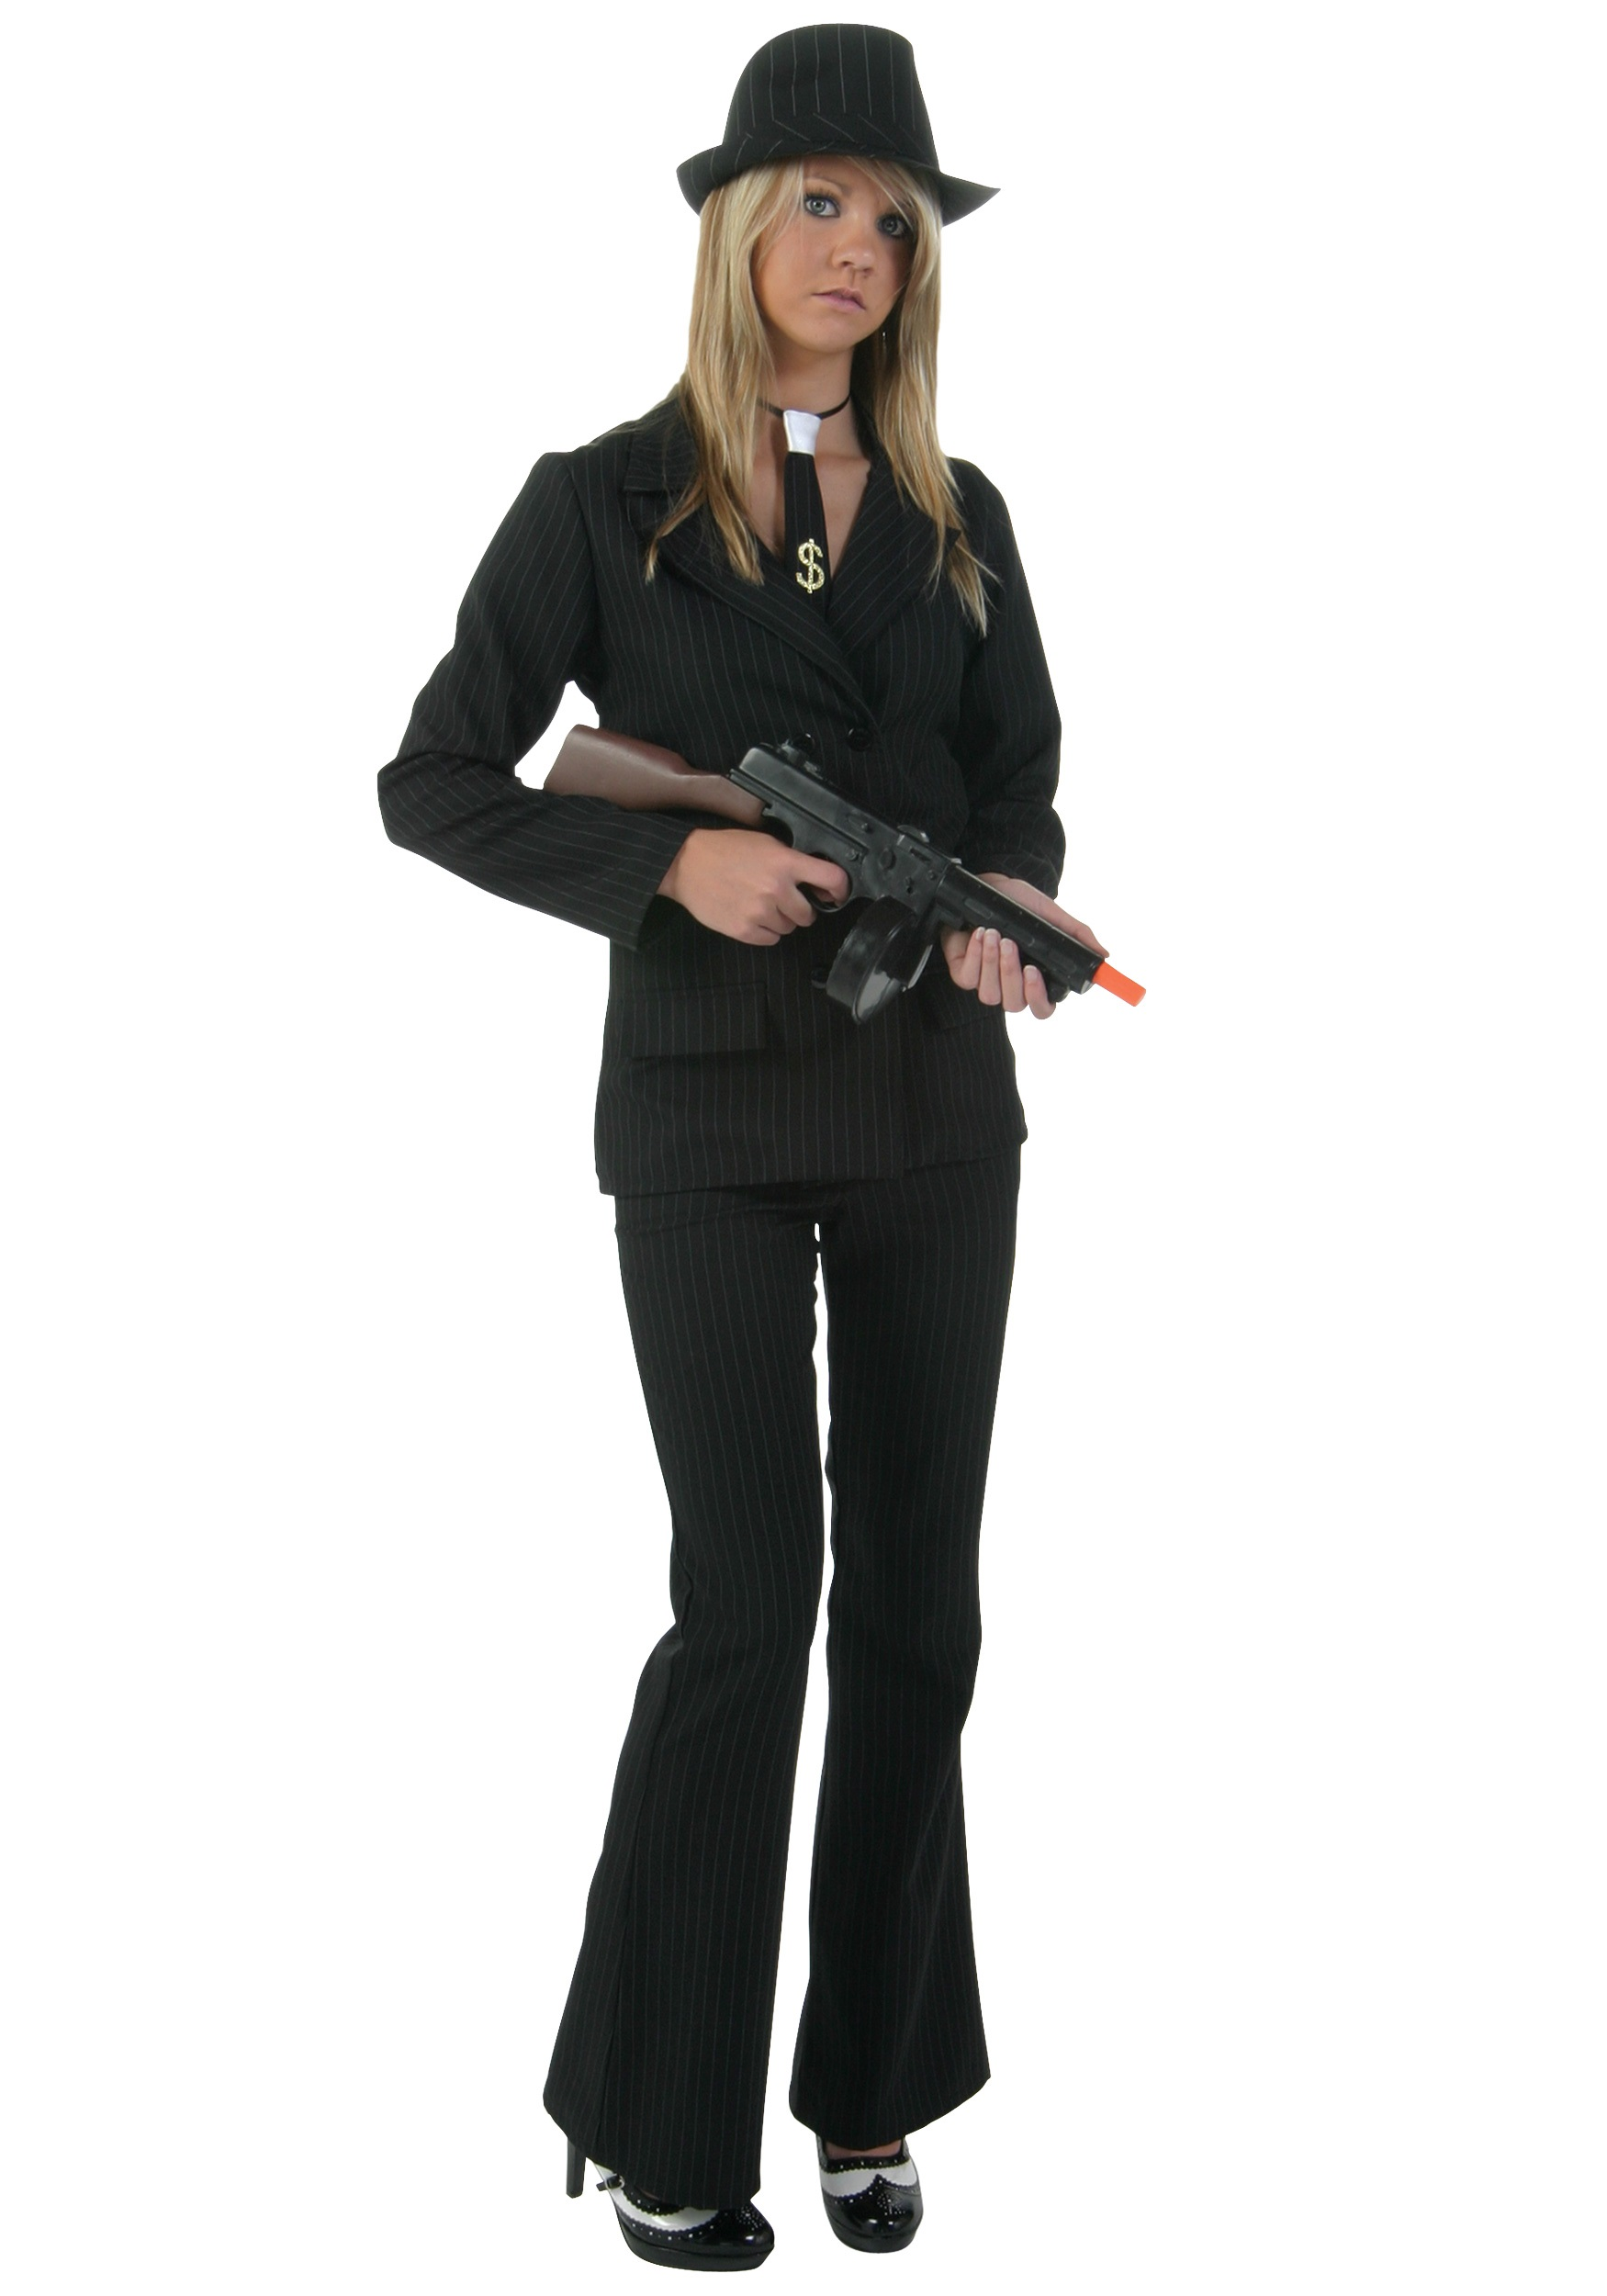 Women's Black Gangster Costume